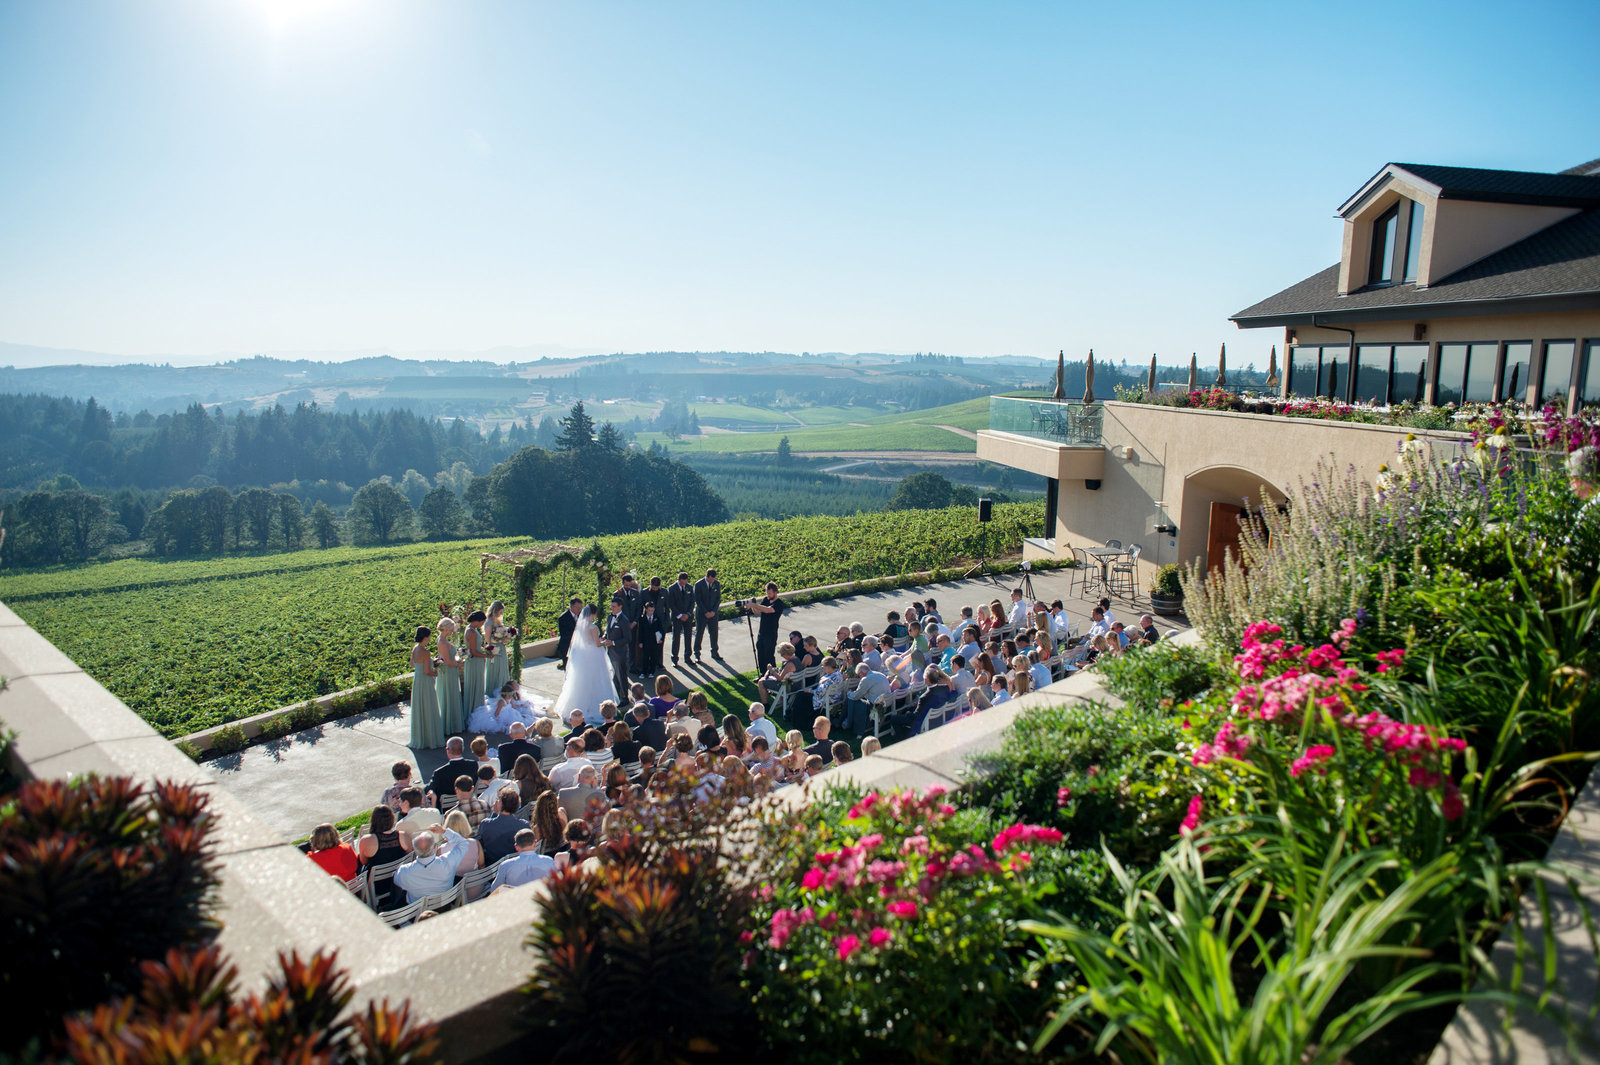 willamette valley vineyards ceremony from above